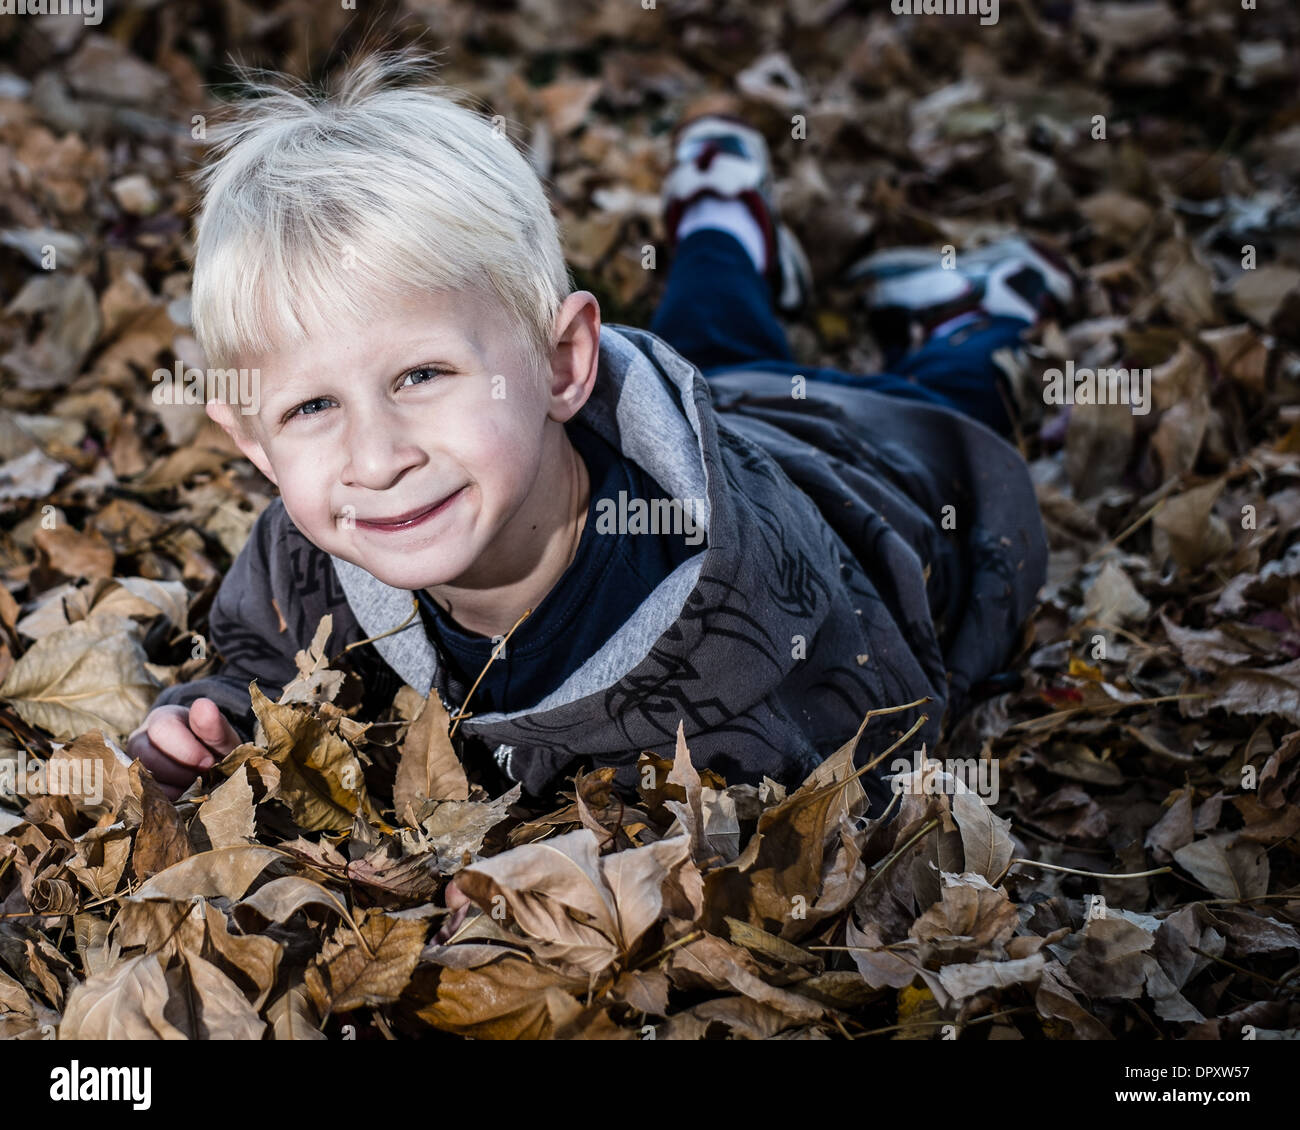 Boy playing with leaves - Stock Image